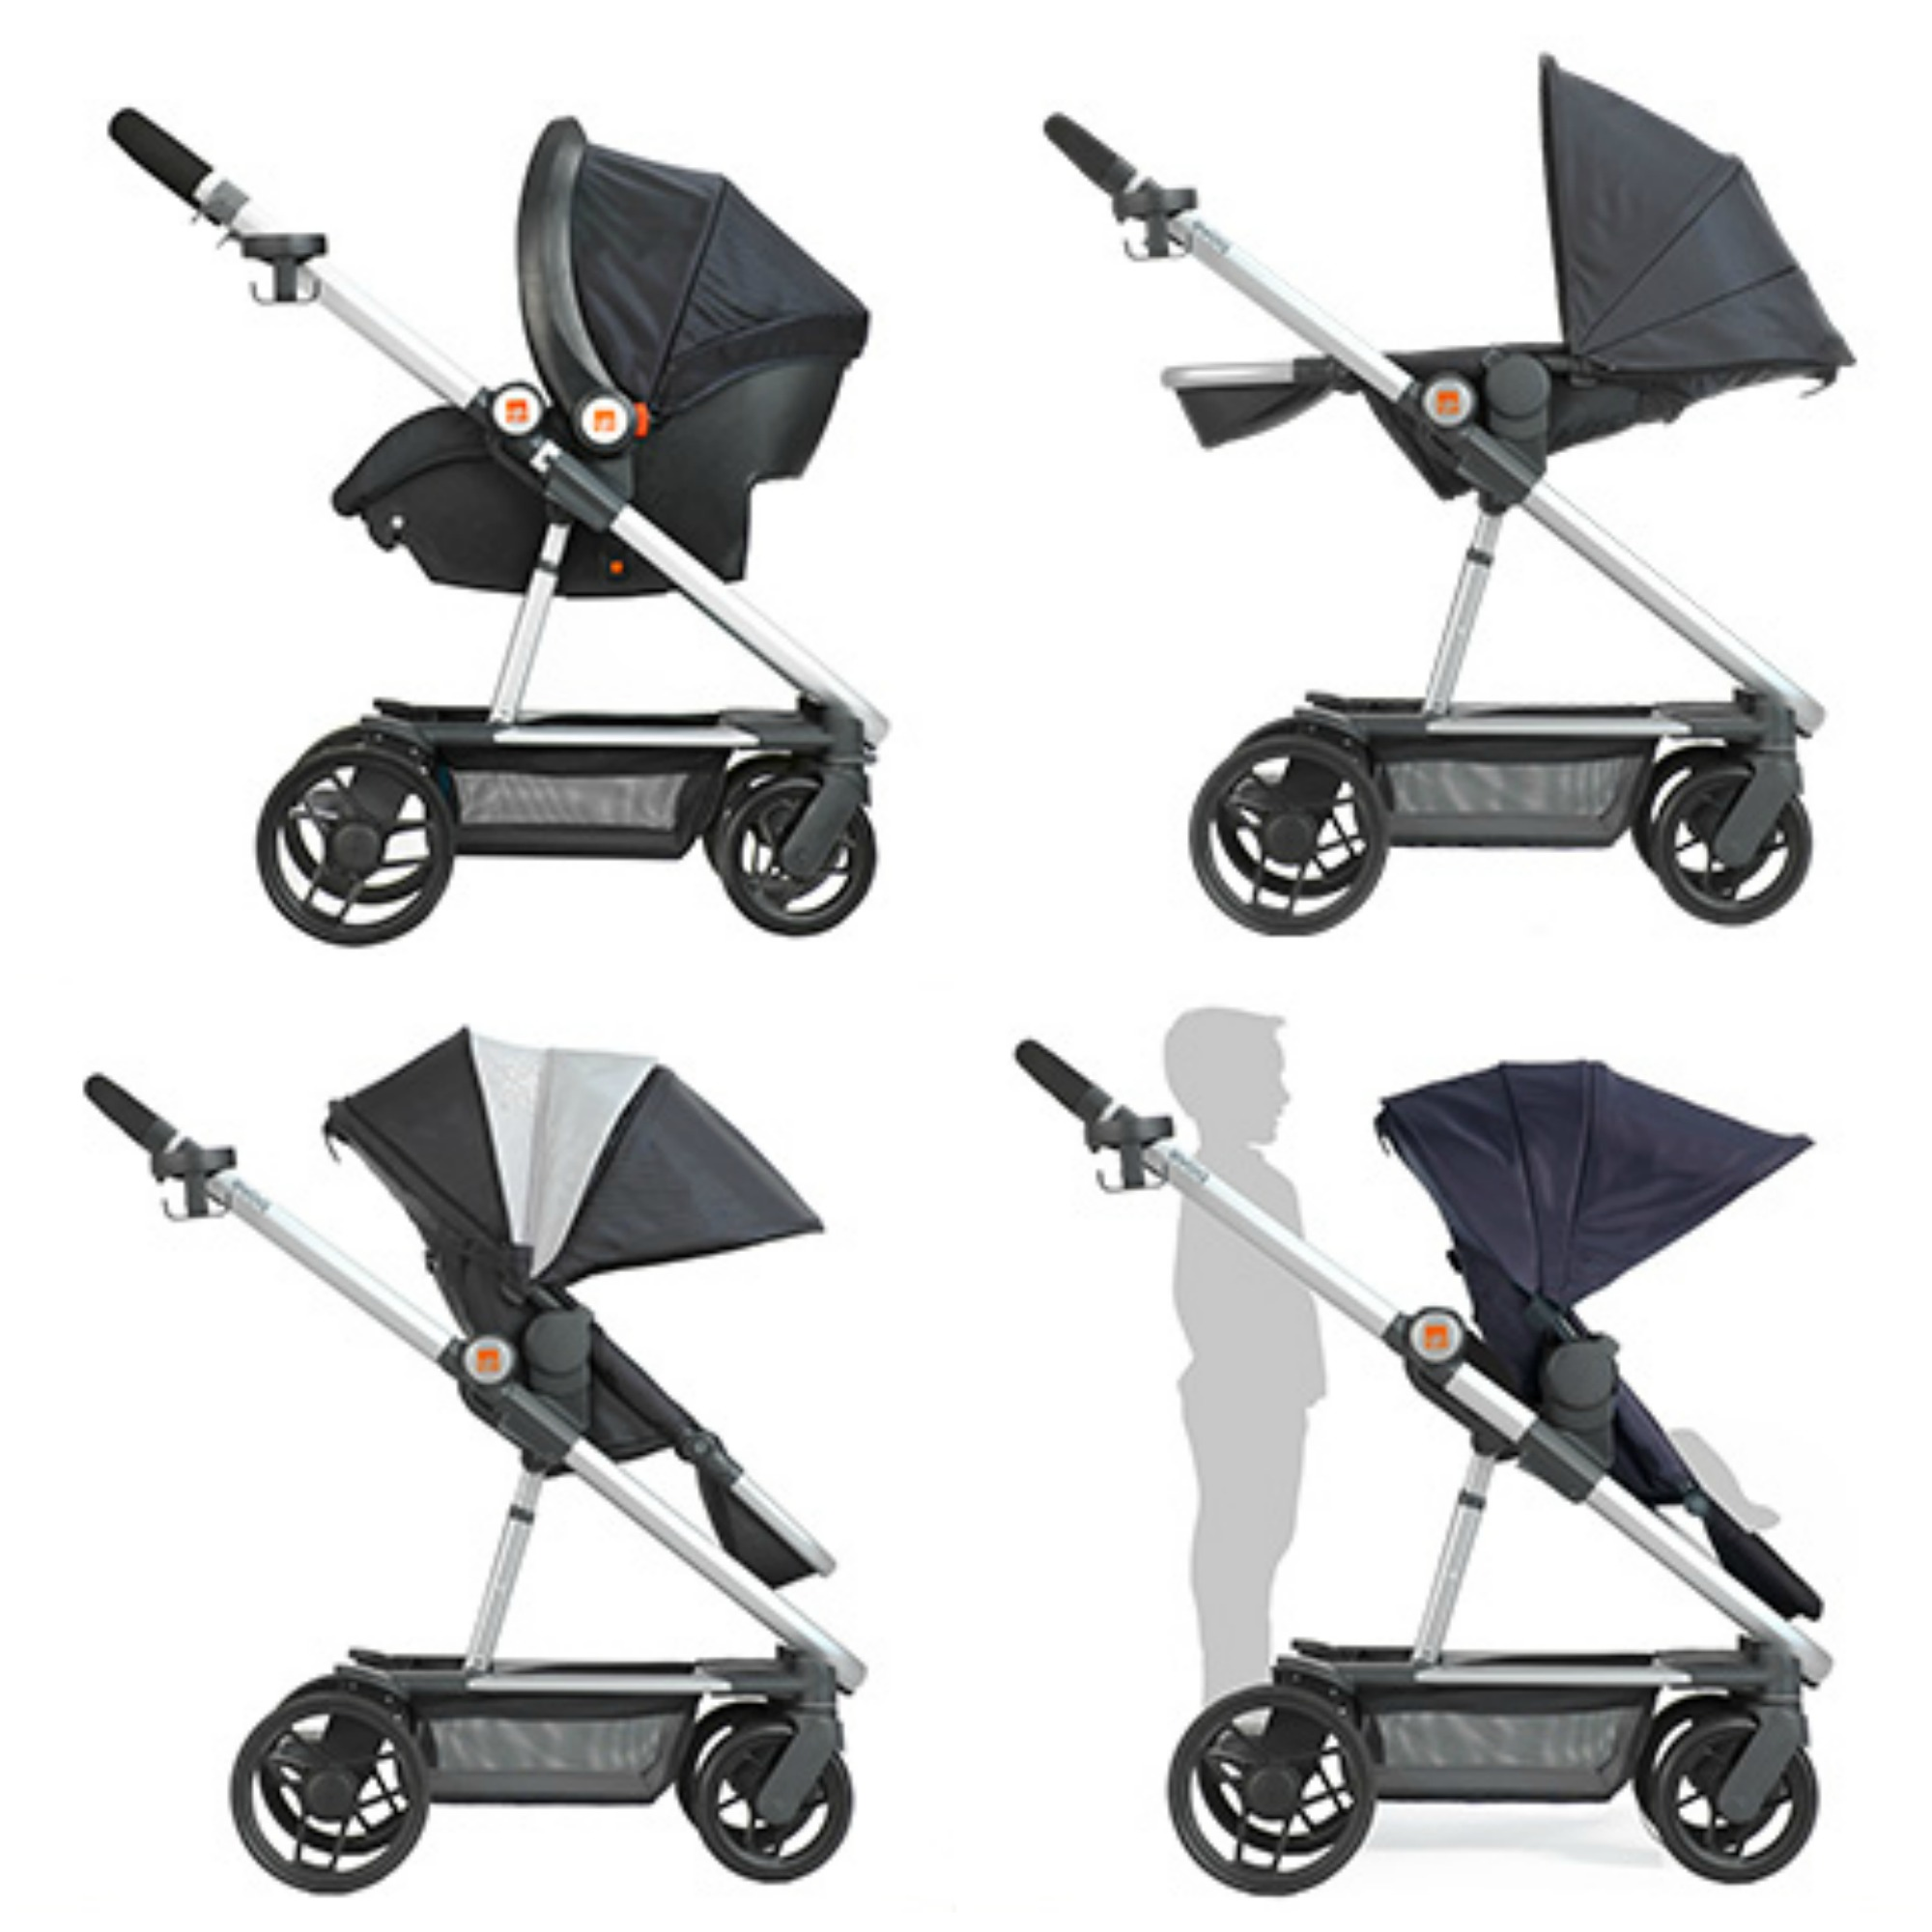 Top Lightweight Travel System Strollers The New Evoq Stroller Travel System By Gb Review Bragging